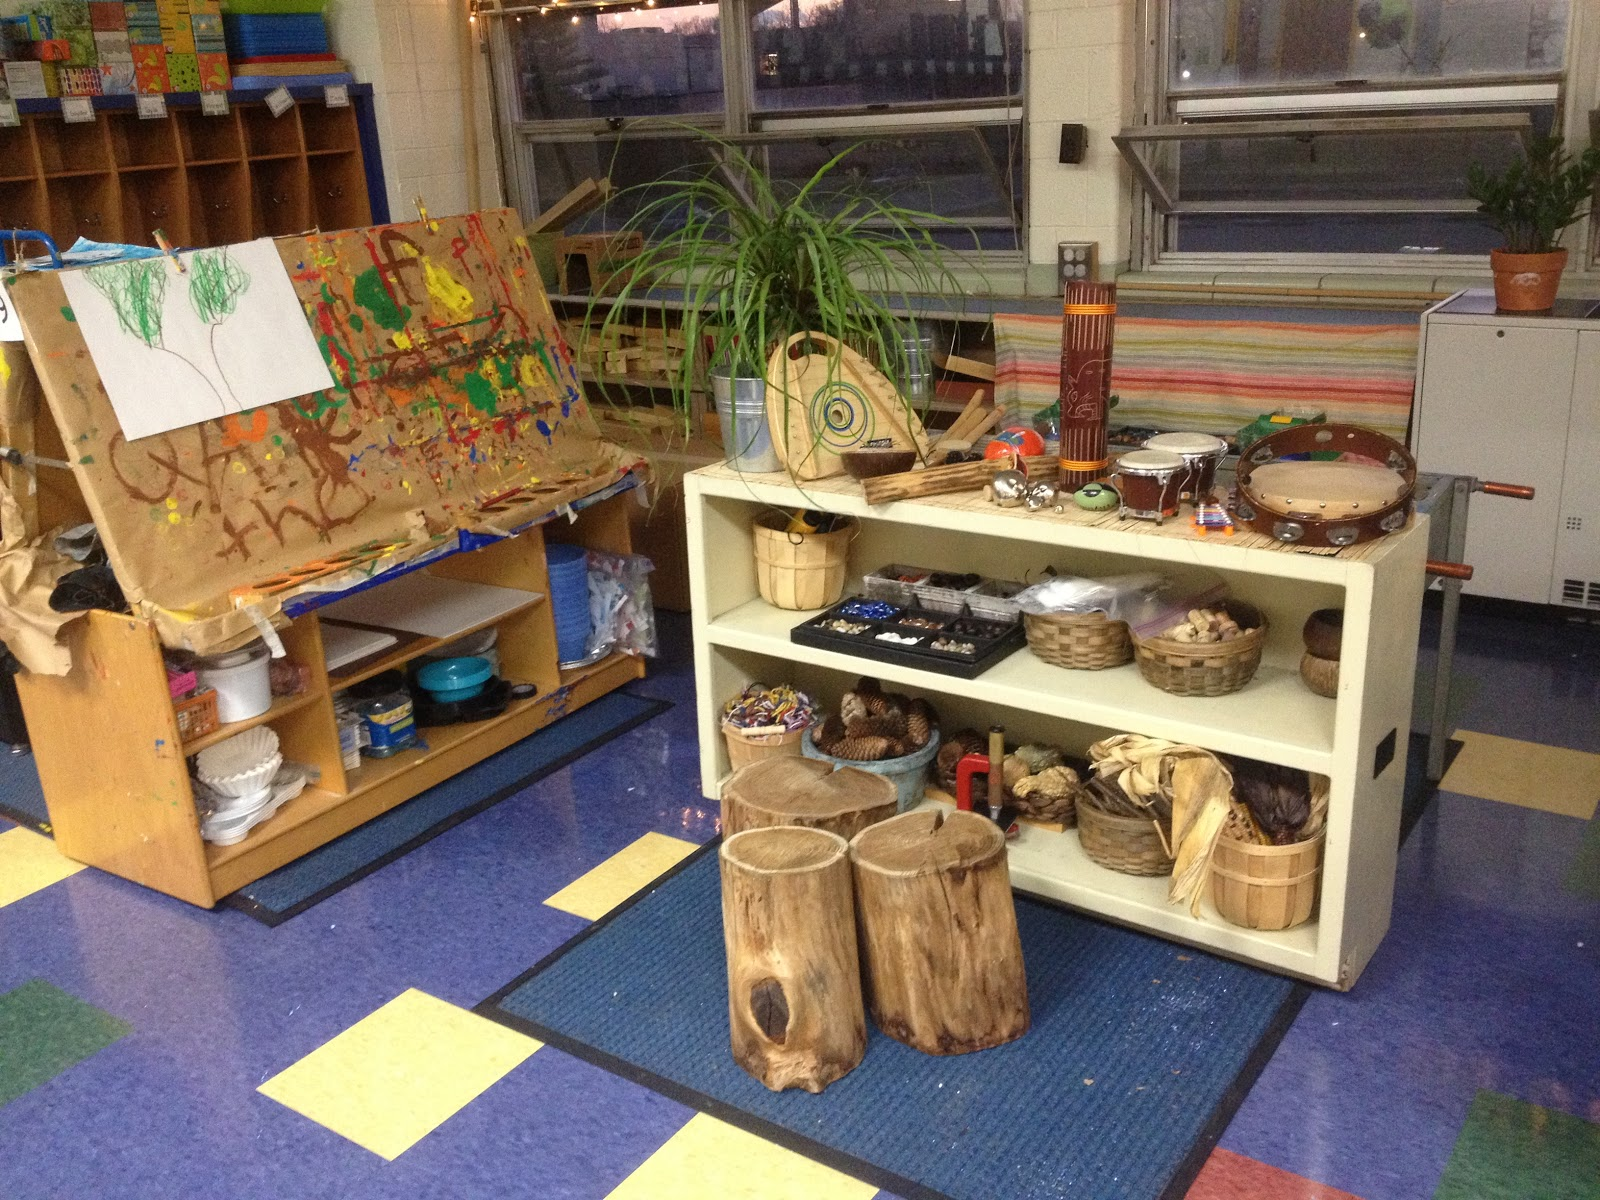 Kinder Garden: Inquiring Minds: Mrs. Myers' Kindergarten: Our Room: An